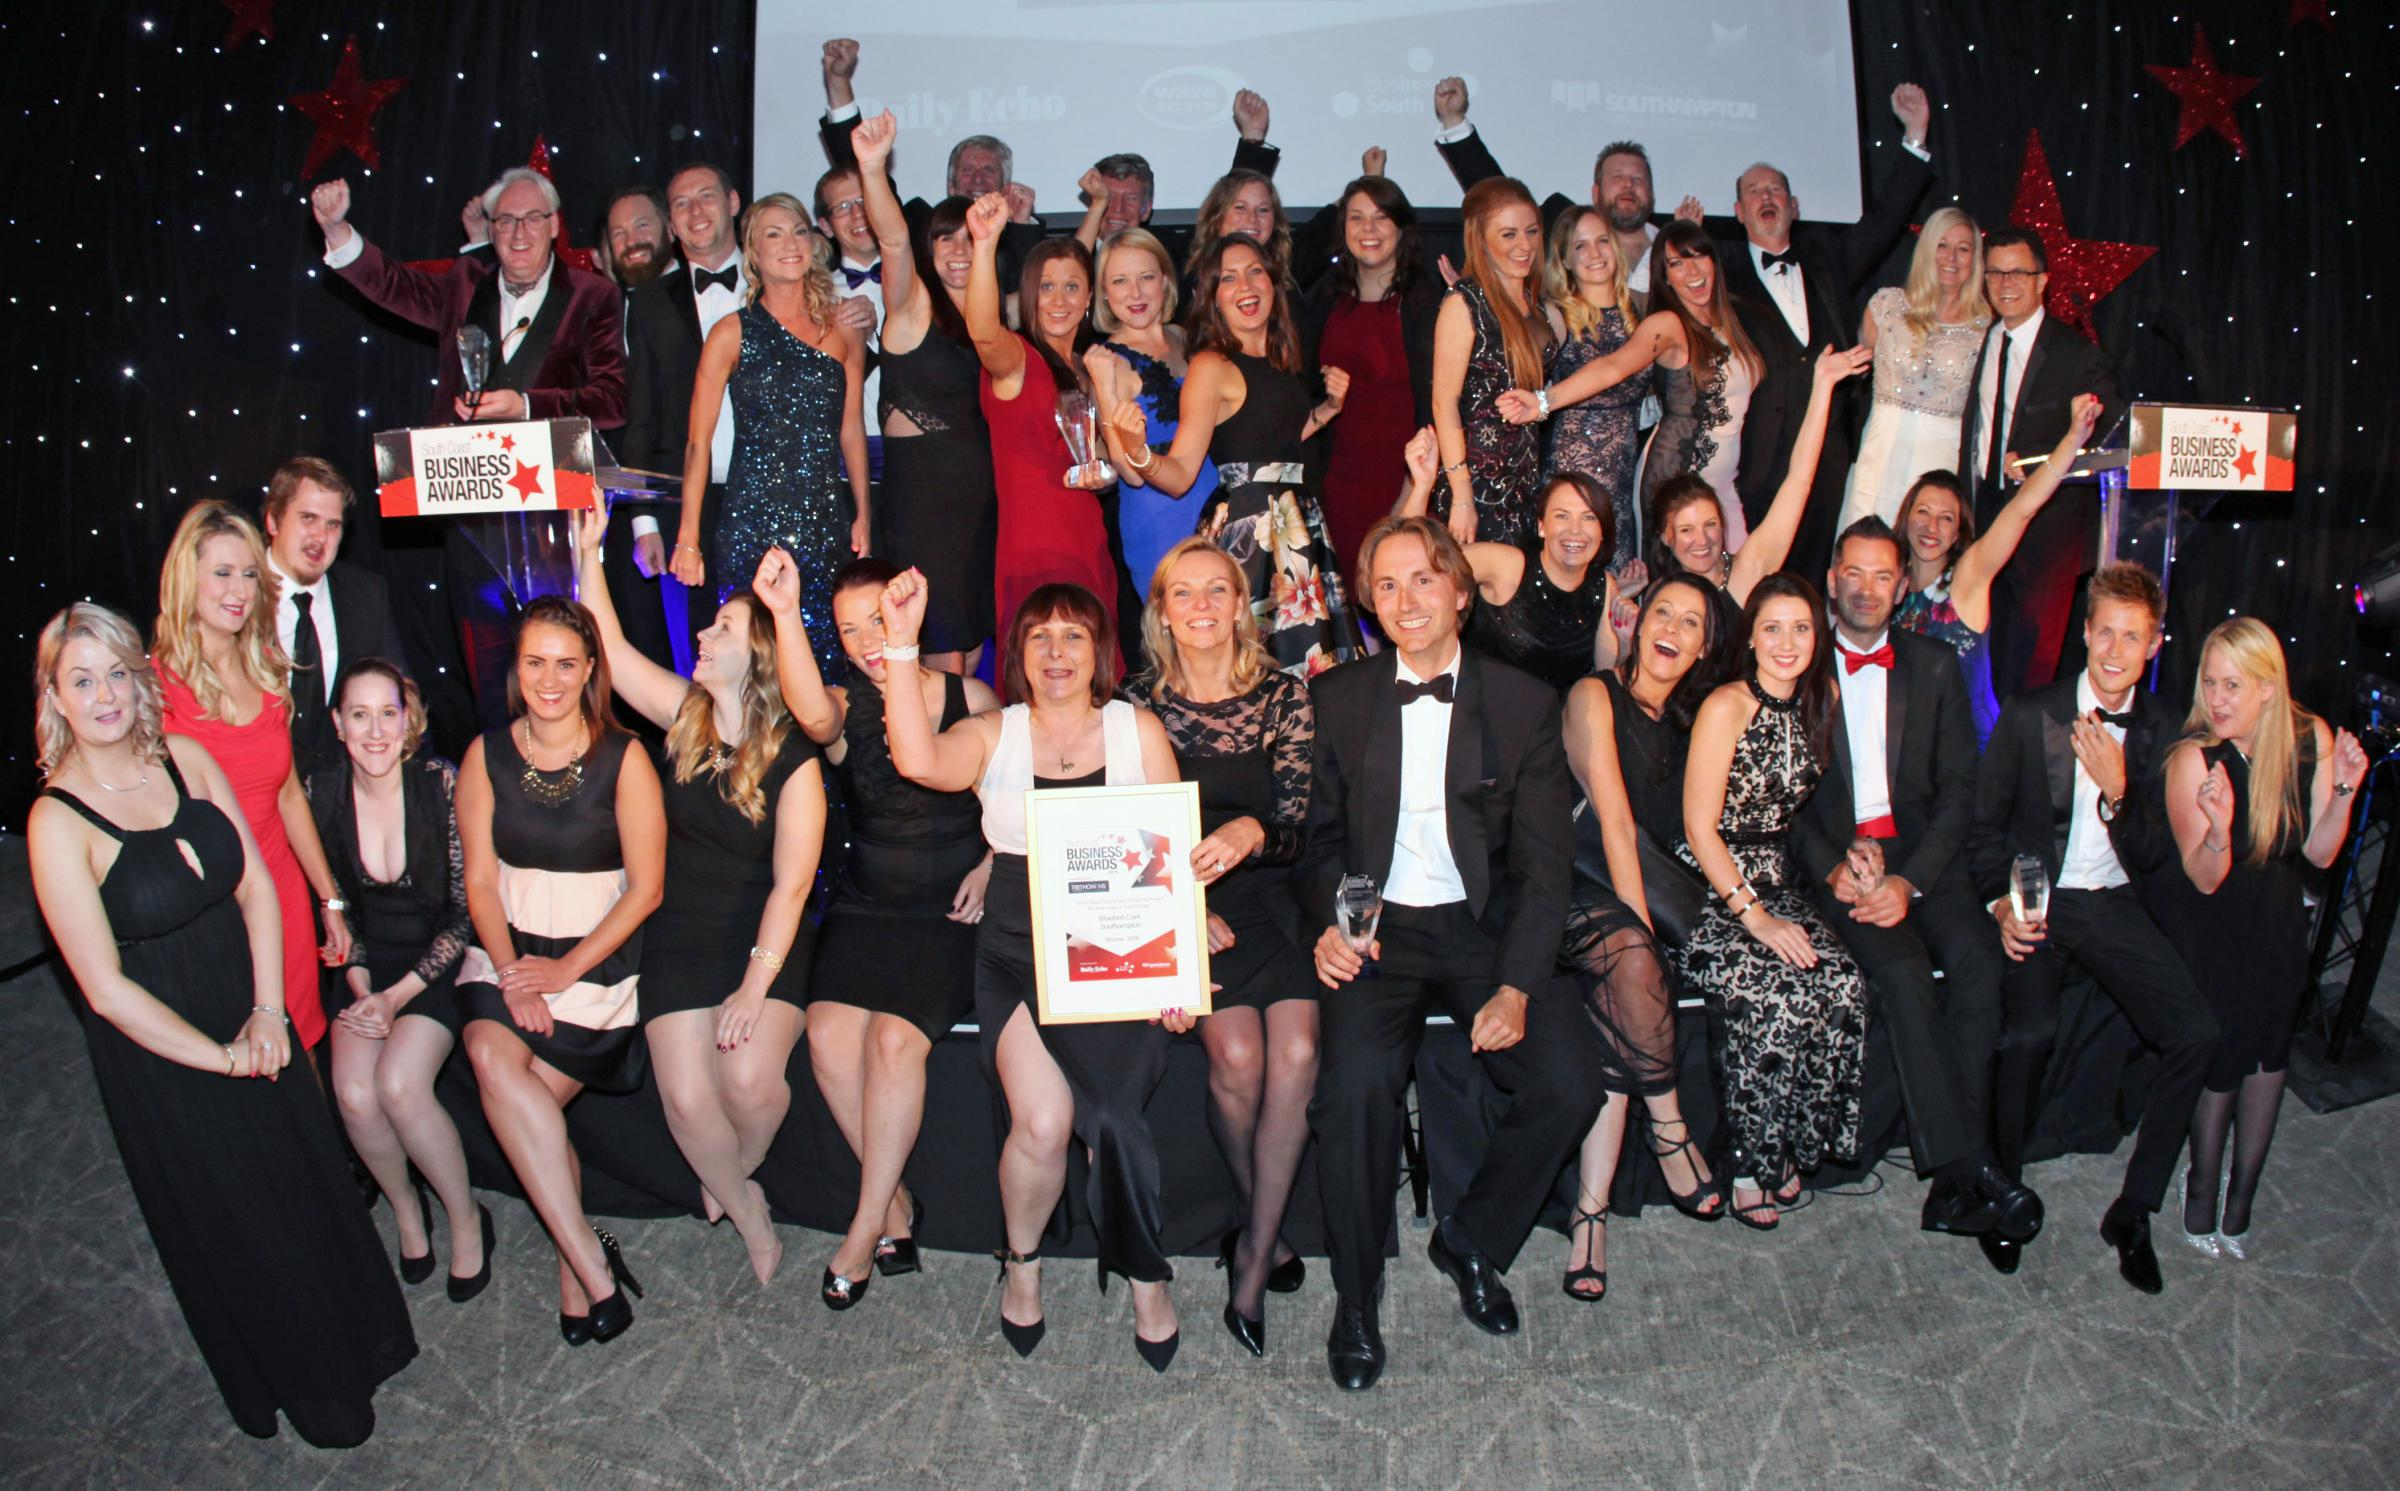 Daily Echo: South Coast Business Award winners 2016